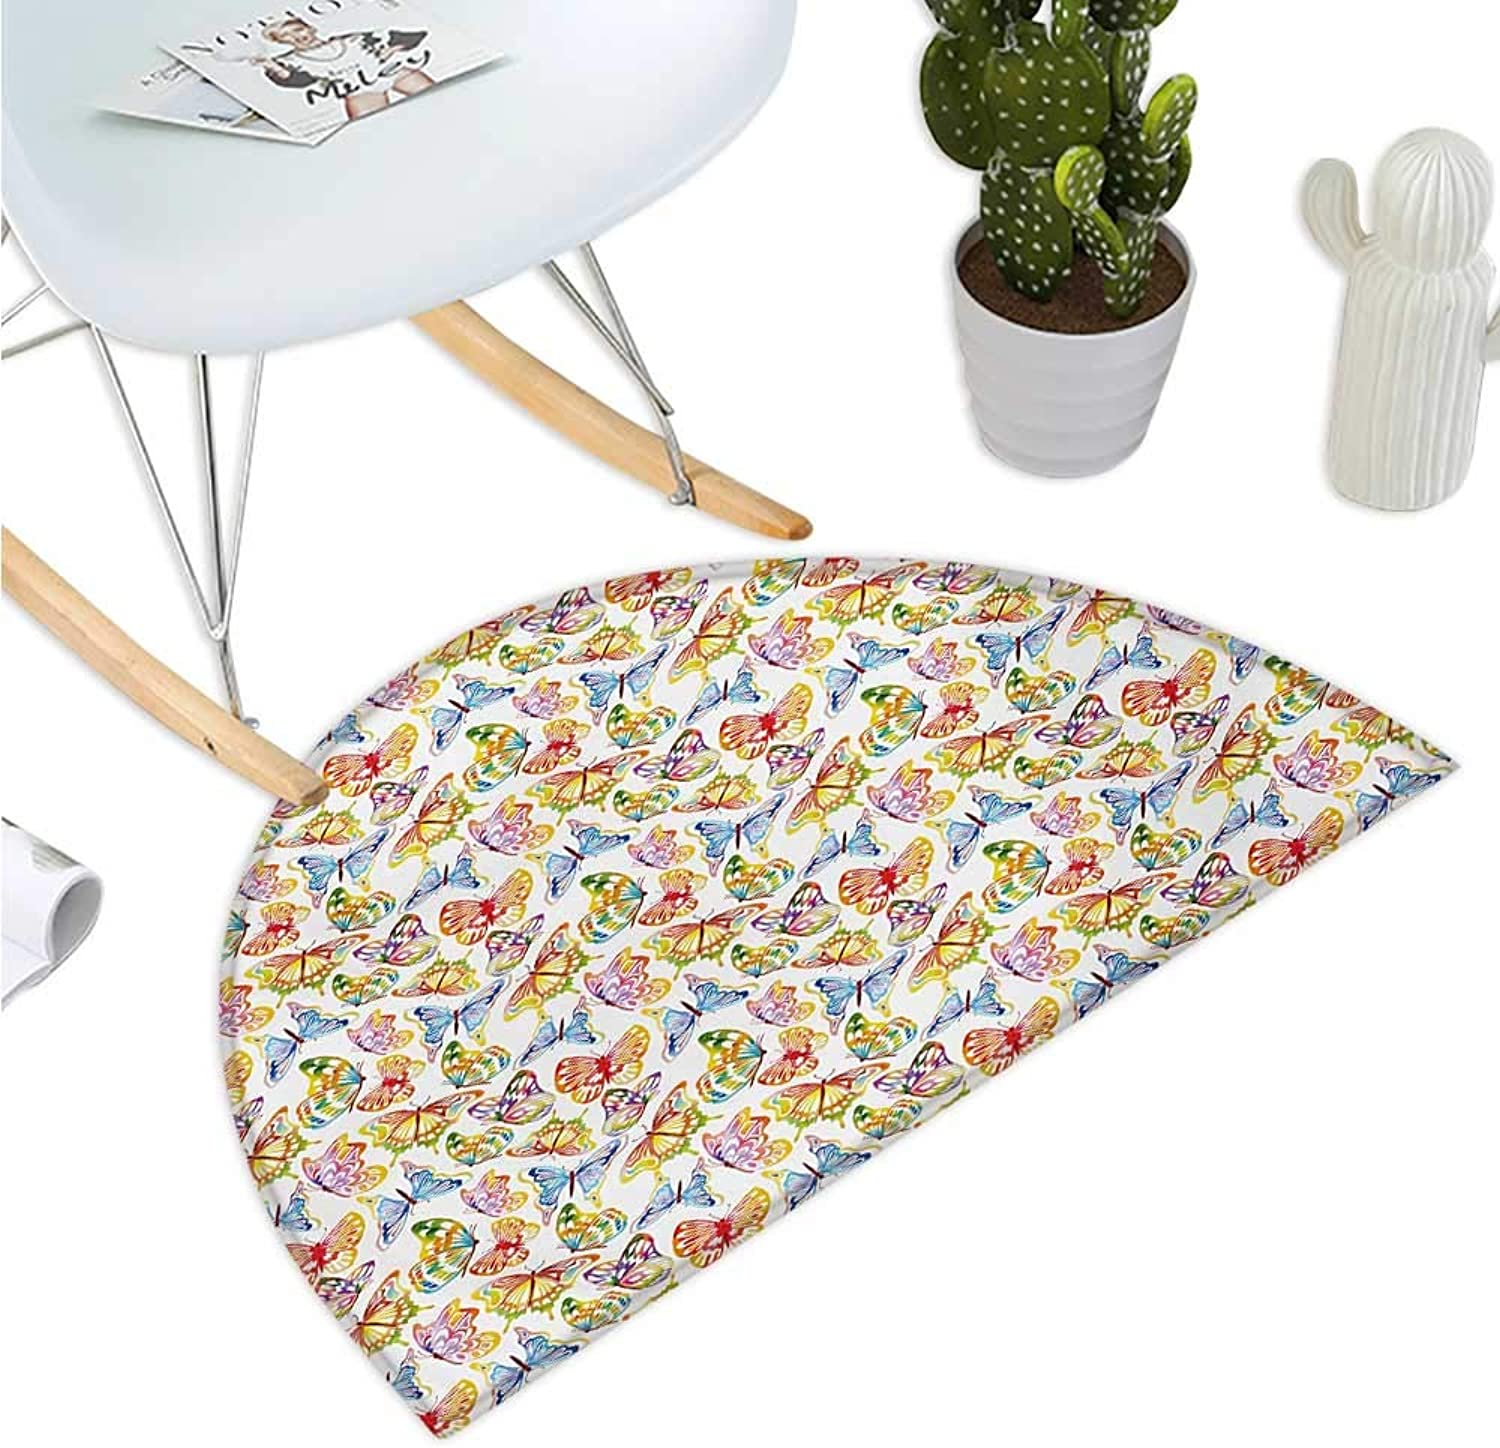 Butterfly Semicircular Cushion Vibrant Animals Psychedelic Sixties Inspired color Palette Nature Illustration Entry Door Mat H 39.3  xD 59  Multicolor